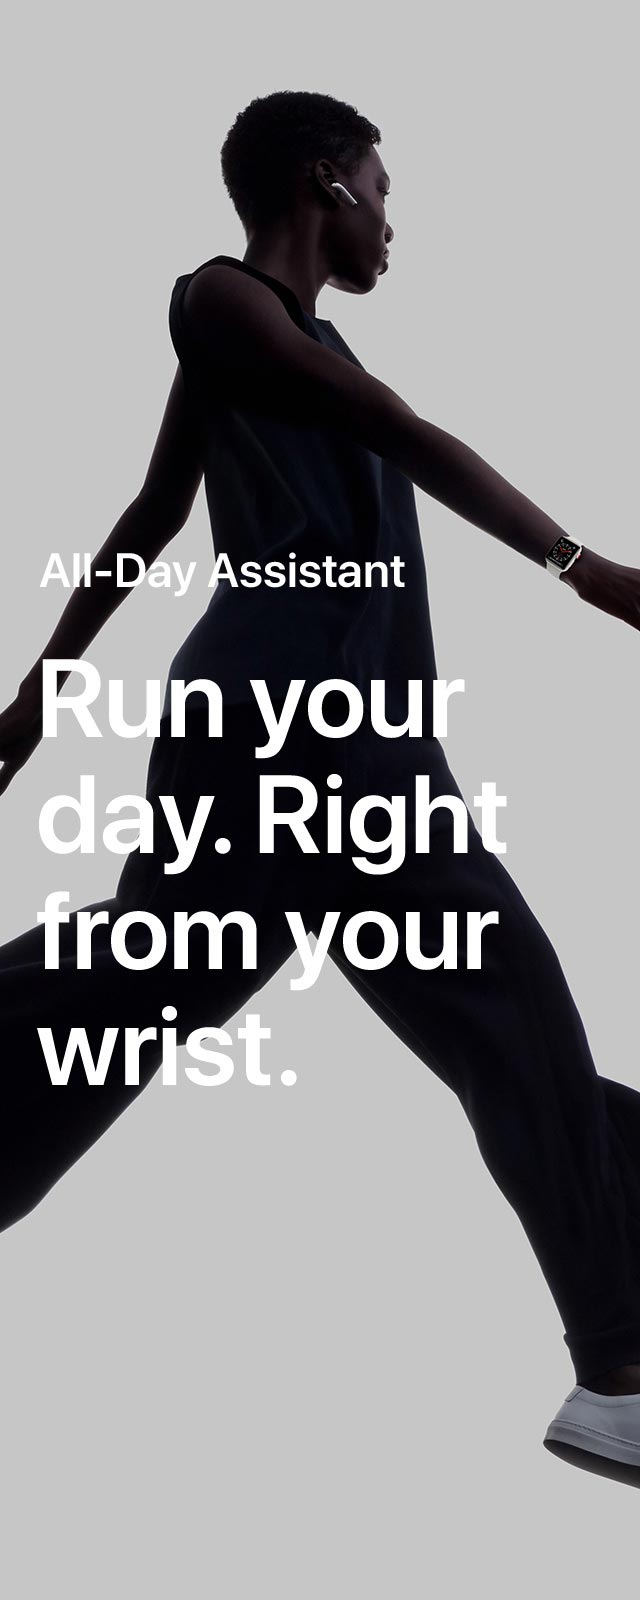 Apple Watch Series 3 All-day Assistant